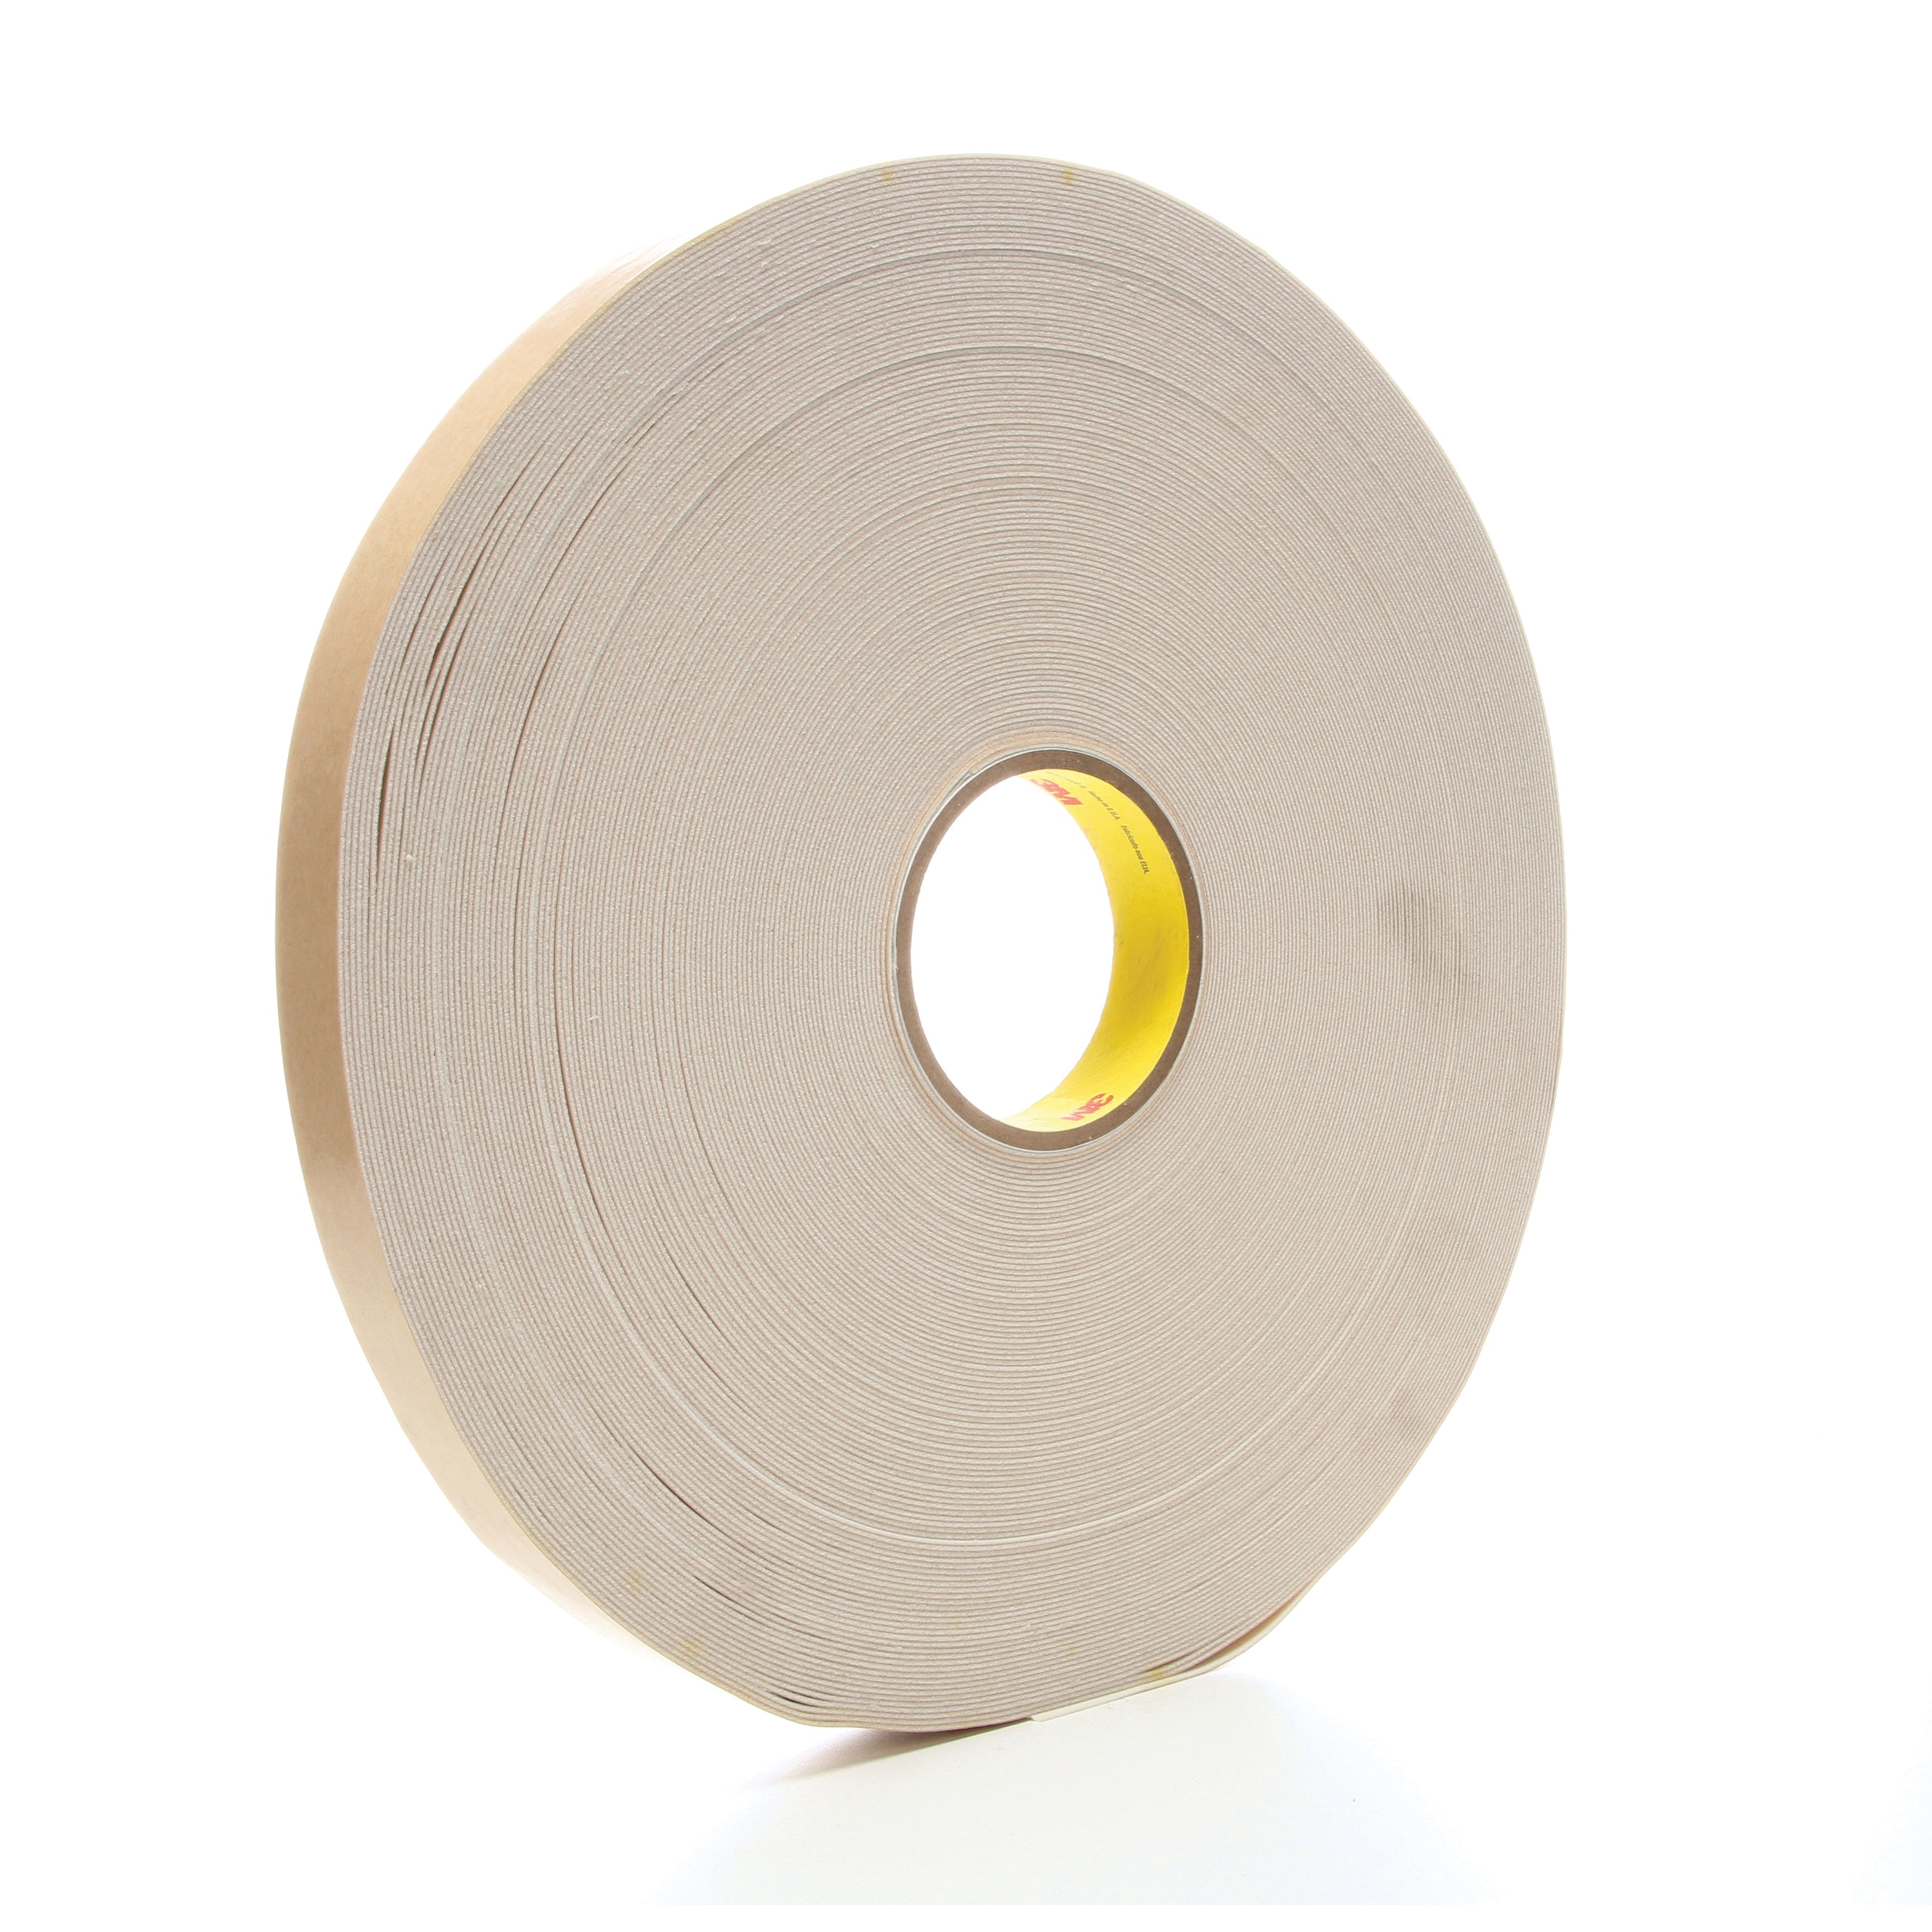 3M™ 021200-17662 Double Coated Tape, 72 yd L x 1 in W, 45 mil THK, Rubber Adhesive, Urethane Foam Backing, Natural